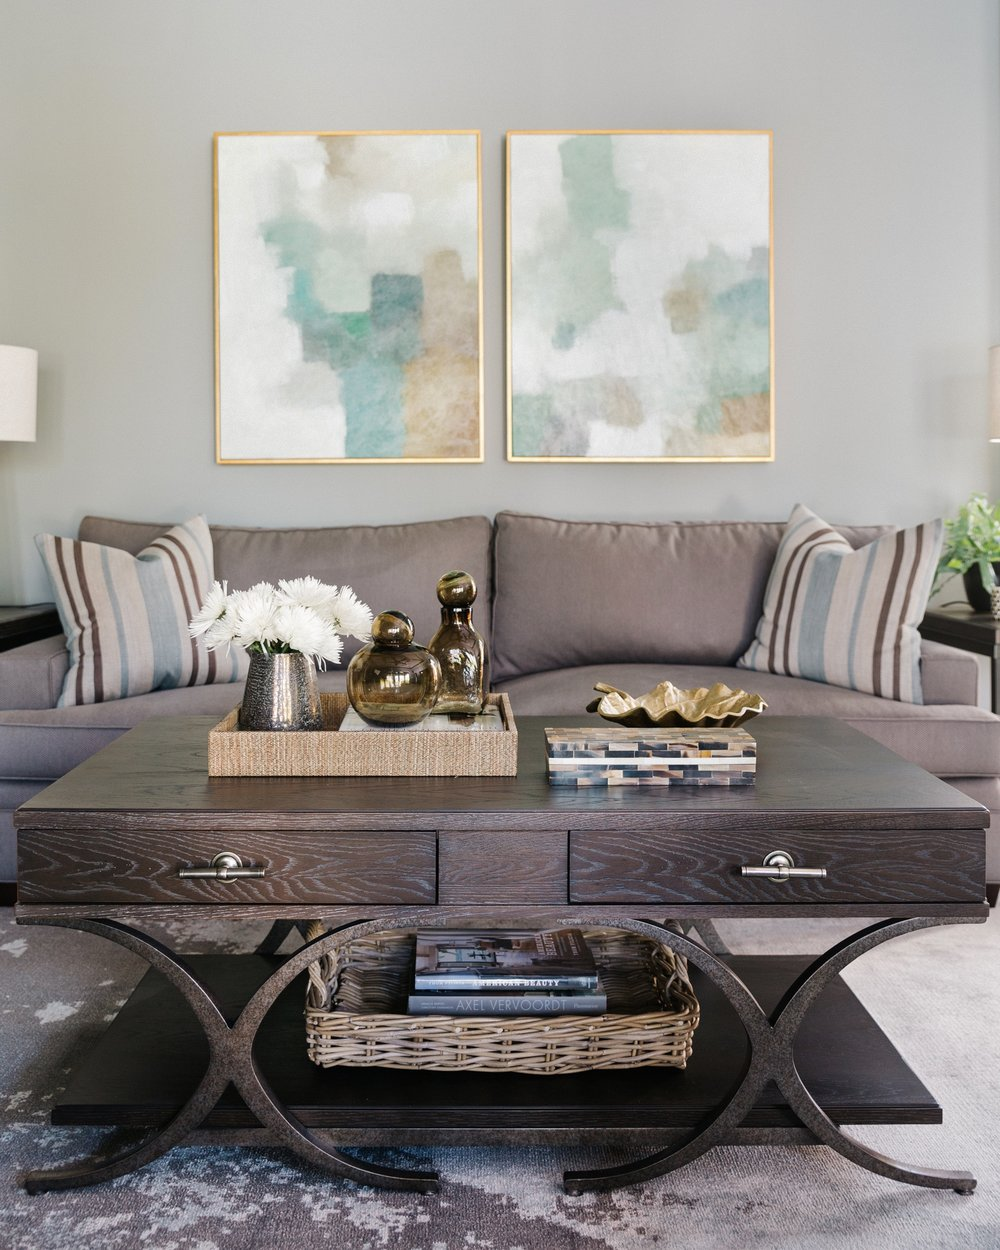 Project Reveal - Family room, backyard oasis, breakfast room | Carla Aston, Designer | Colleen Scott, Photographer | #familyroom #familyroomideas #coffeetablestyling